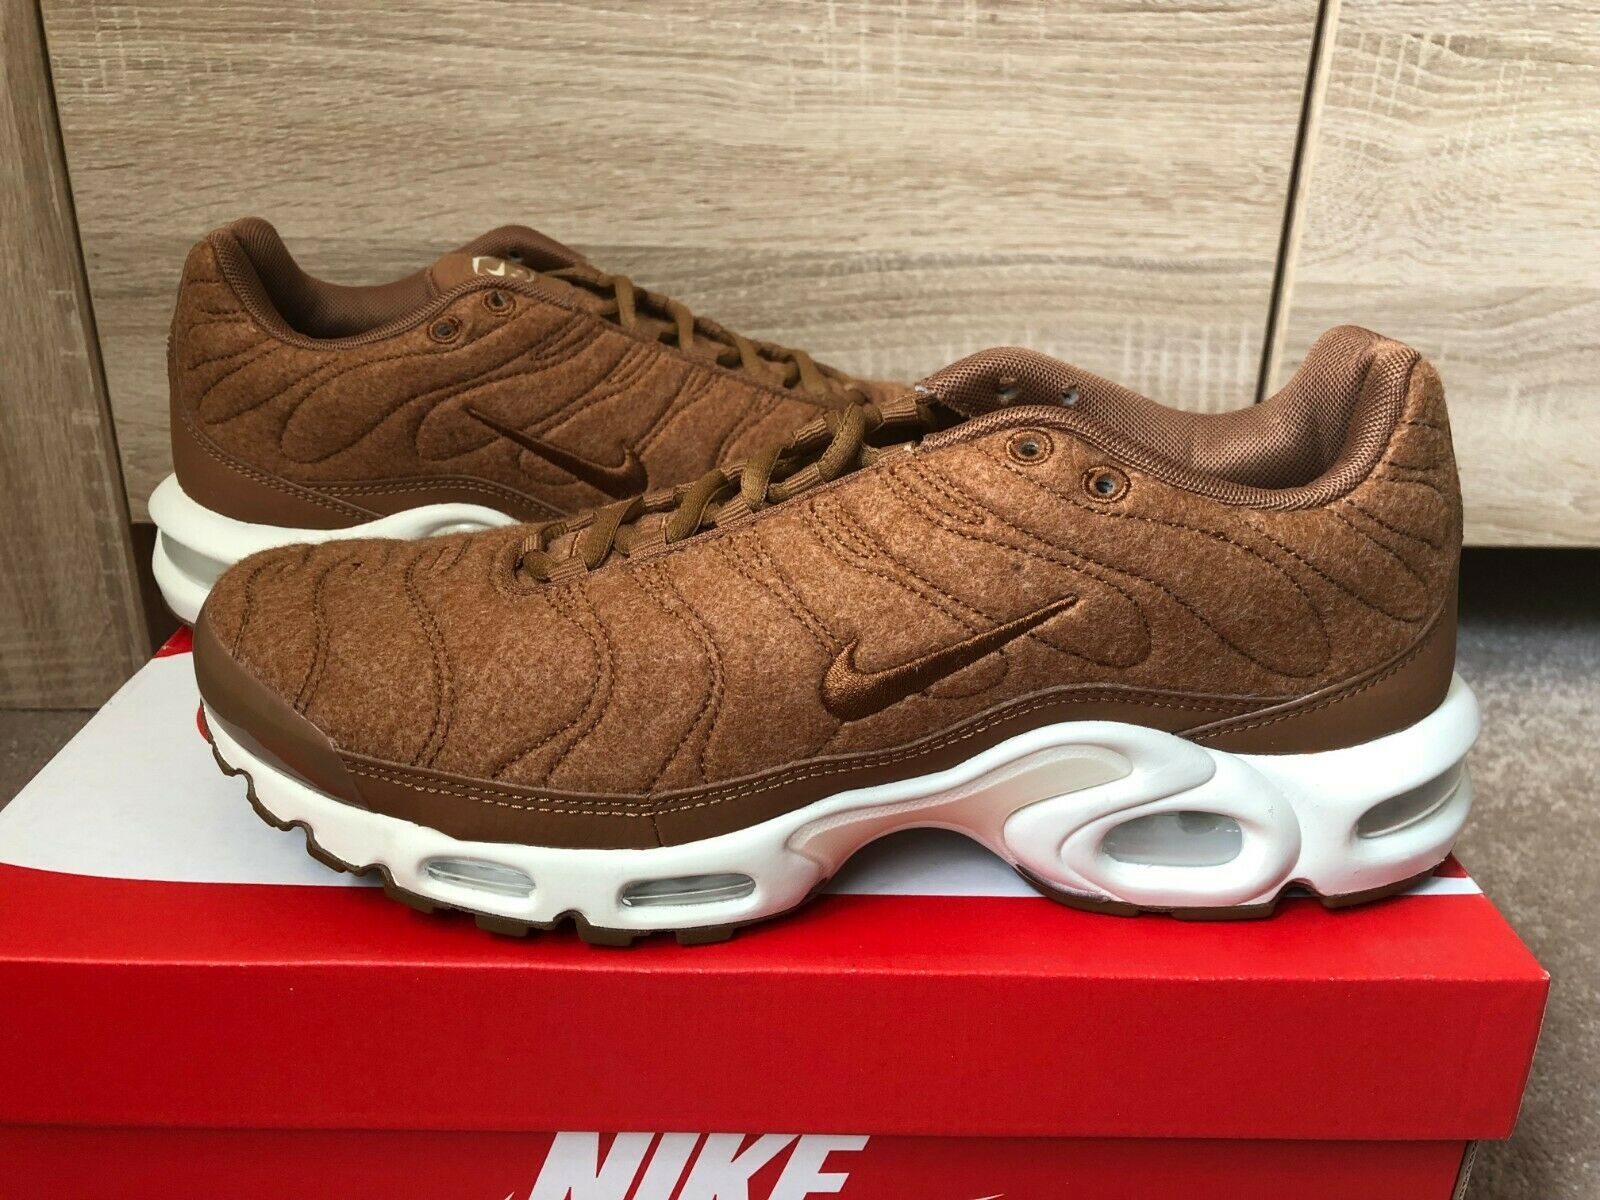 100% Original NIKE Air Max Plus TN Tuned 1 Quilted Requin Taille 44 Marron Nouveau